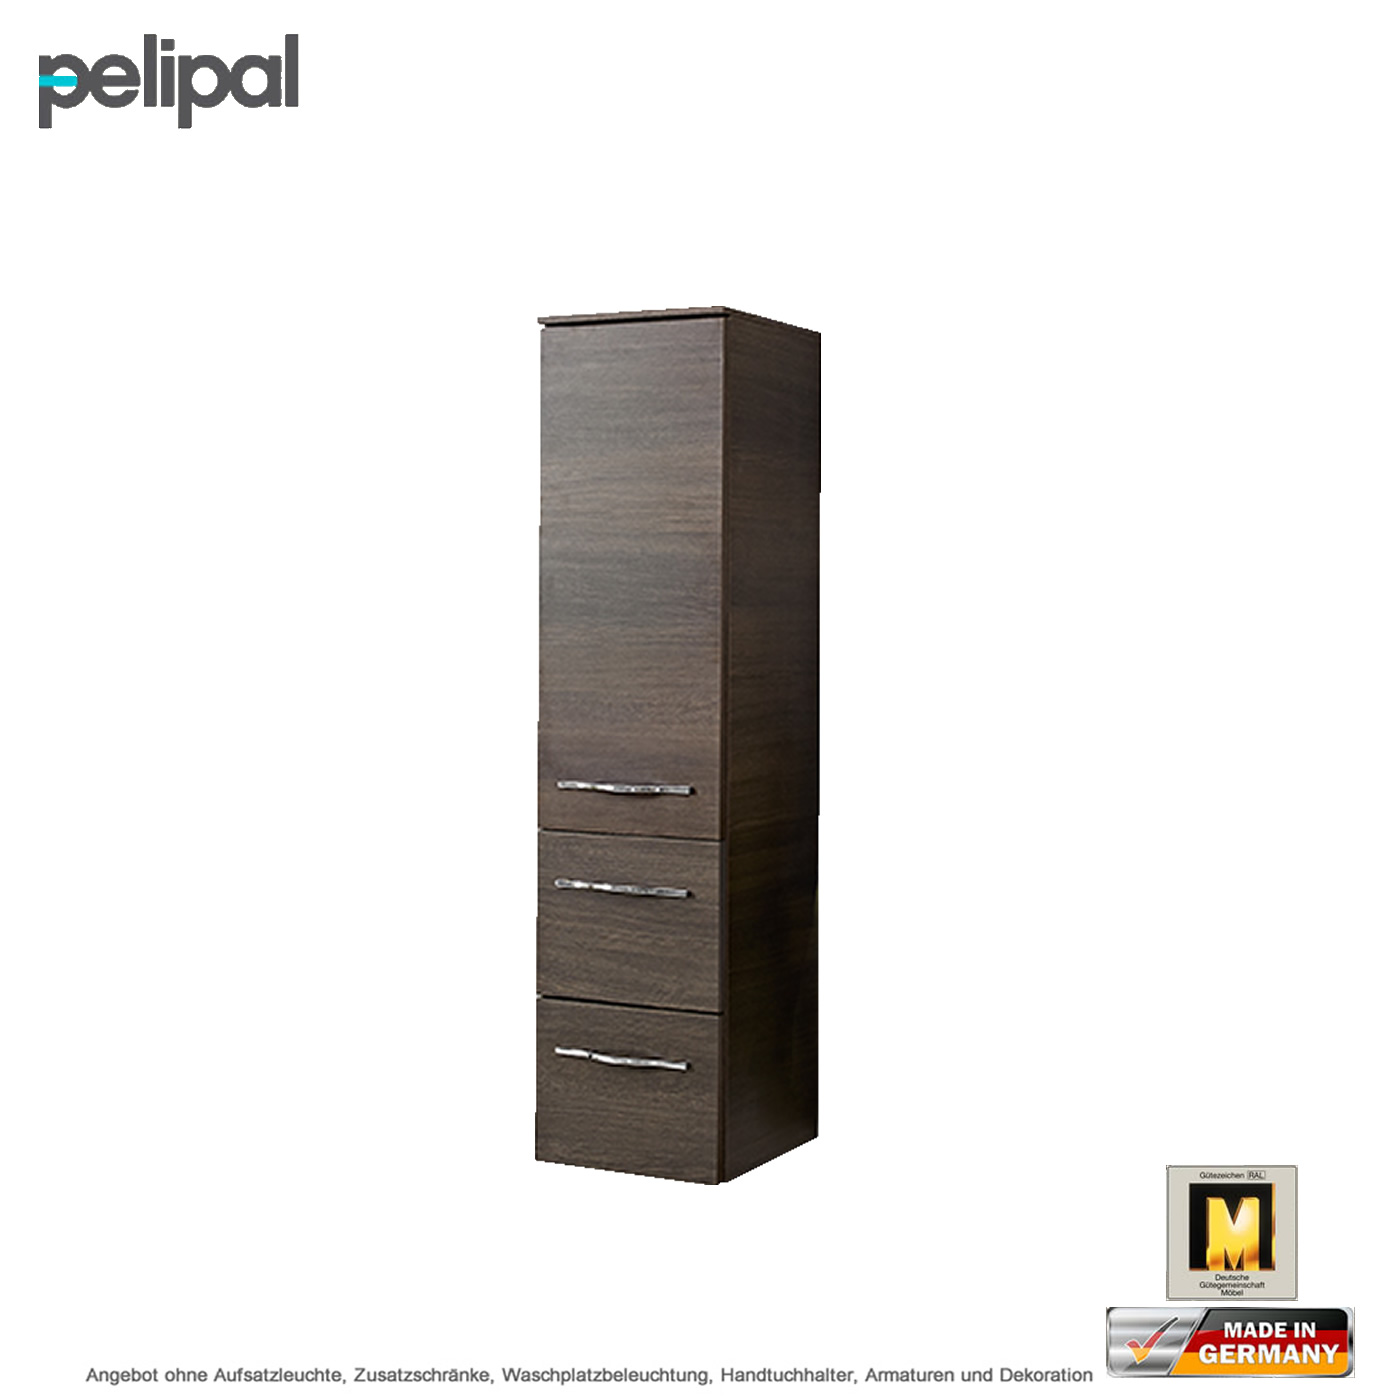 pelipal solitaire 6110 midischrank 121 cm 2 ausz ge. Black Bedroom Furniture Sets. Home Design Ideas